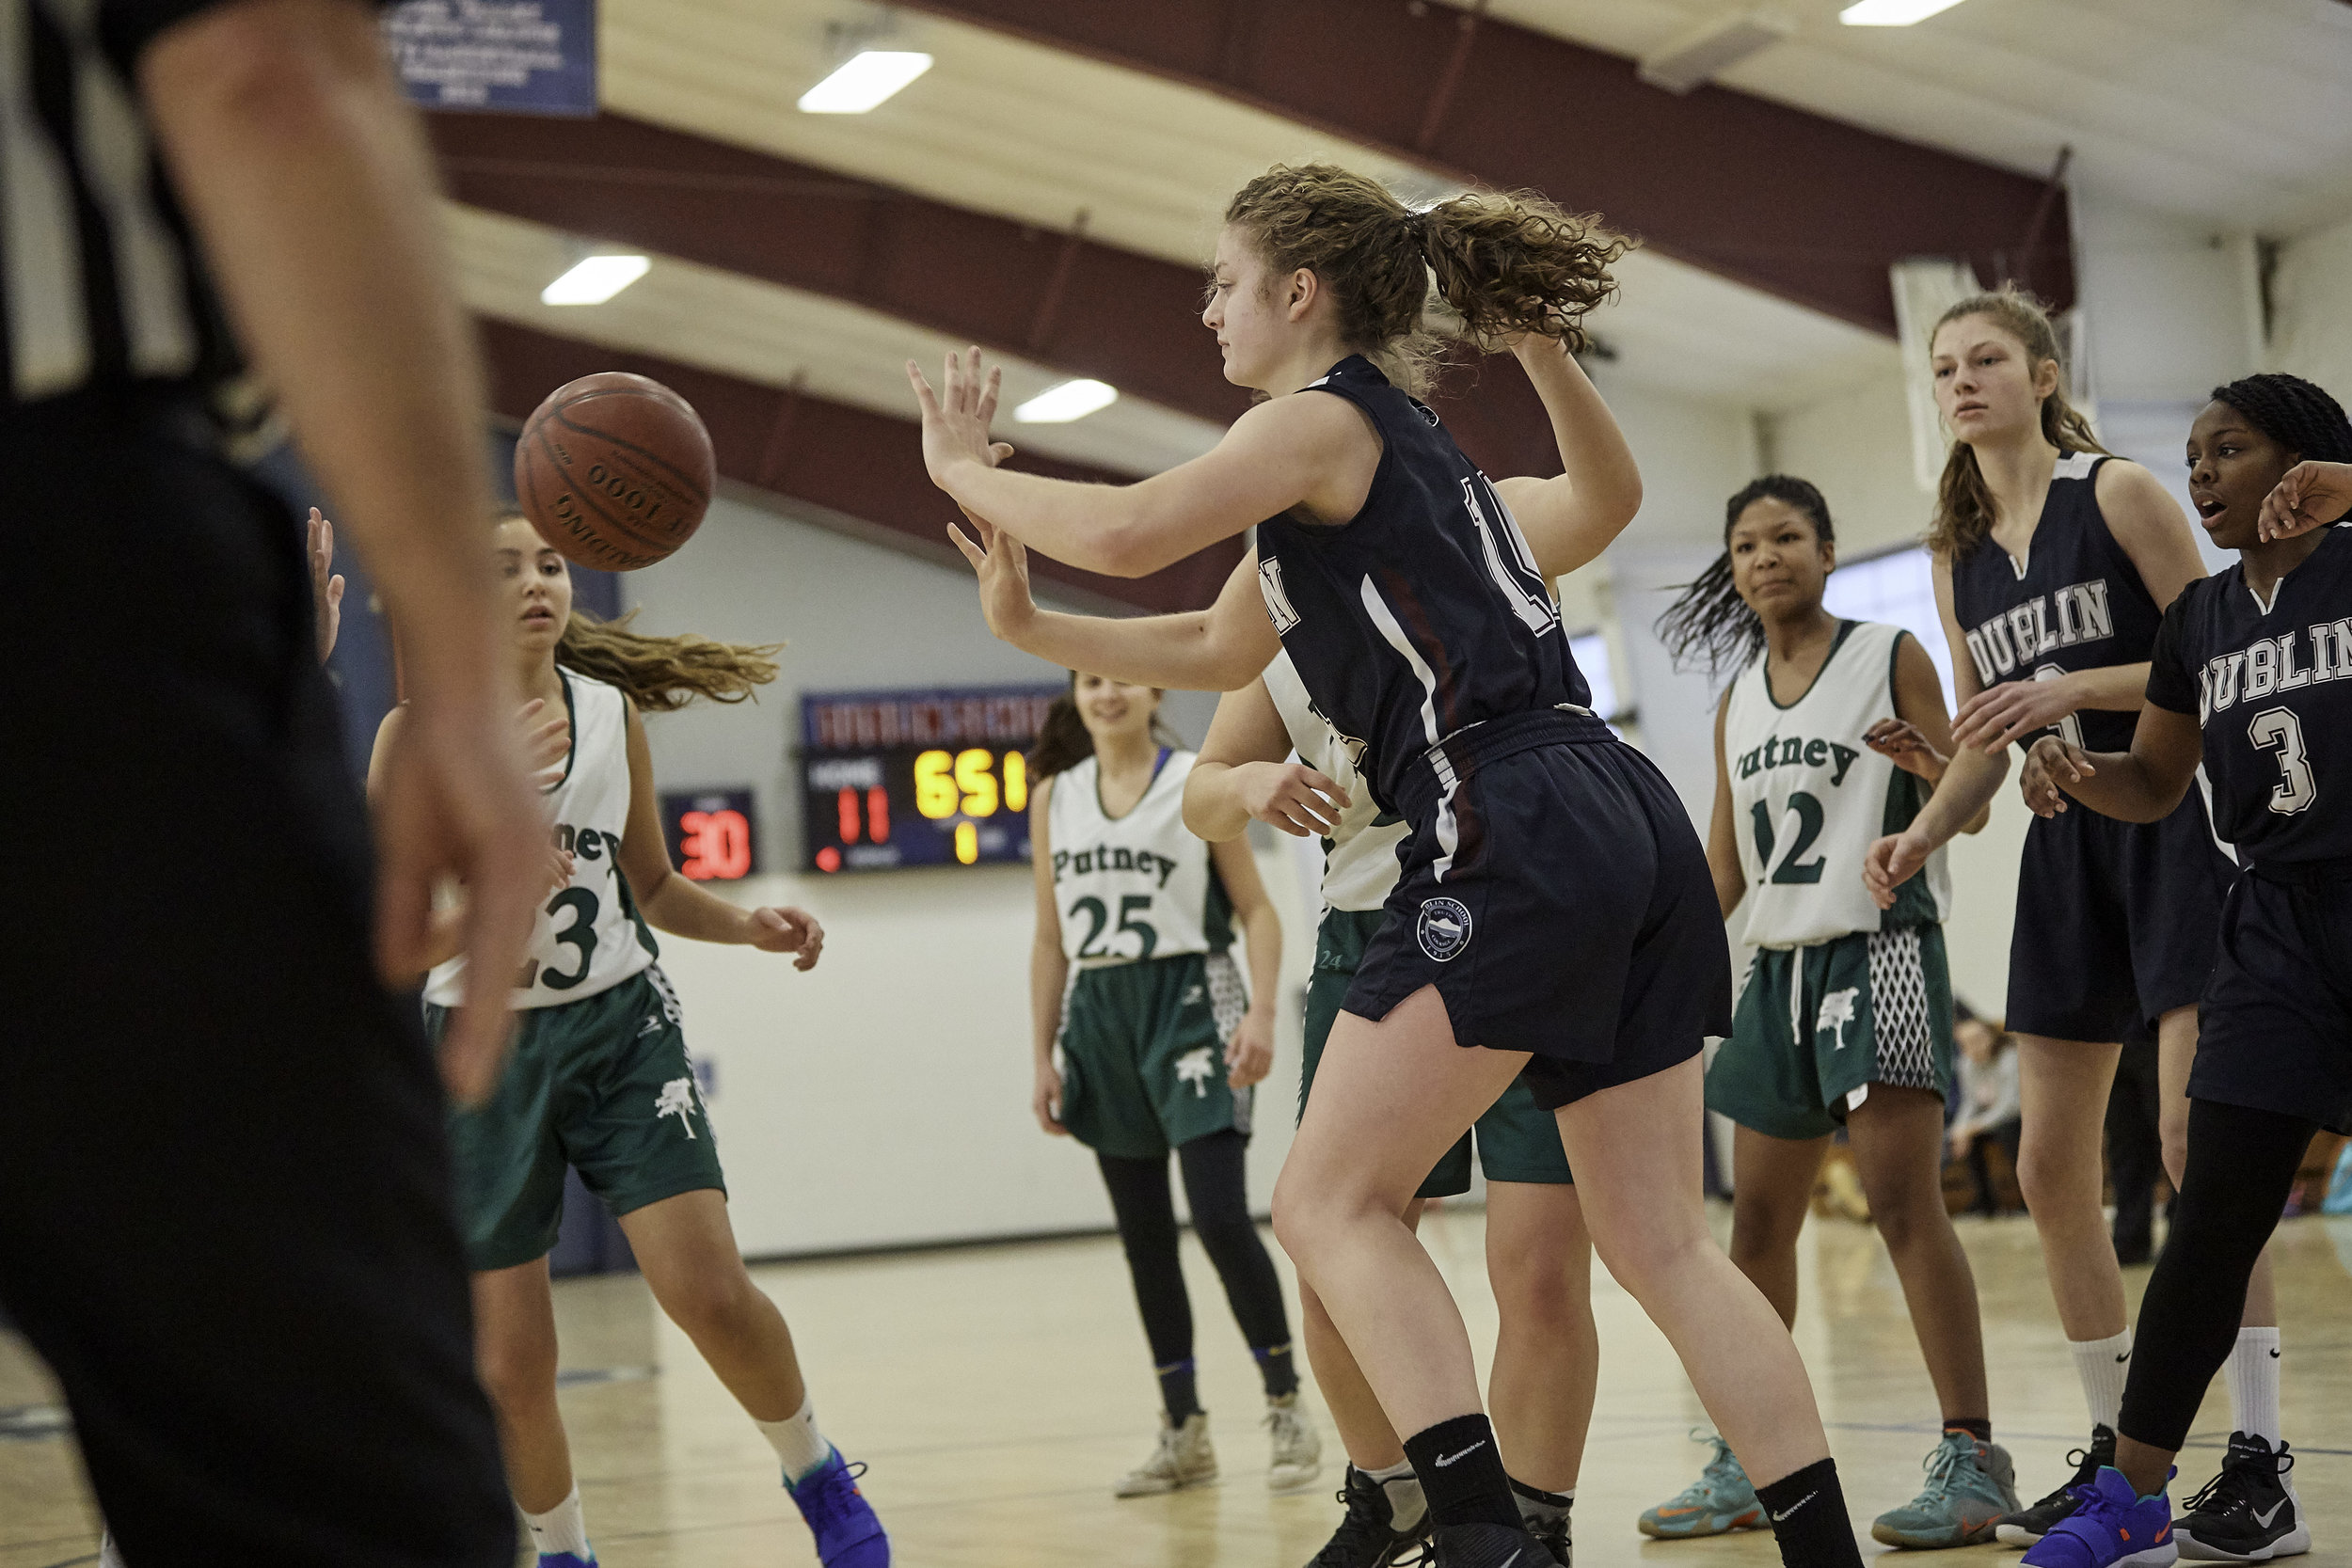 Basketball vs Putney School, February 9, 2019 - 167258.jpg